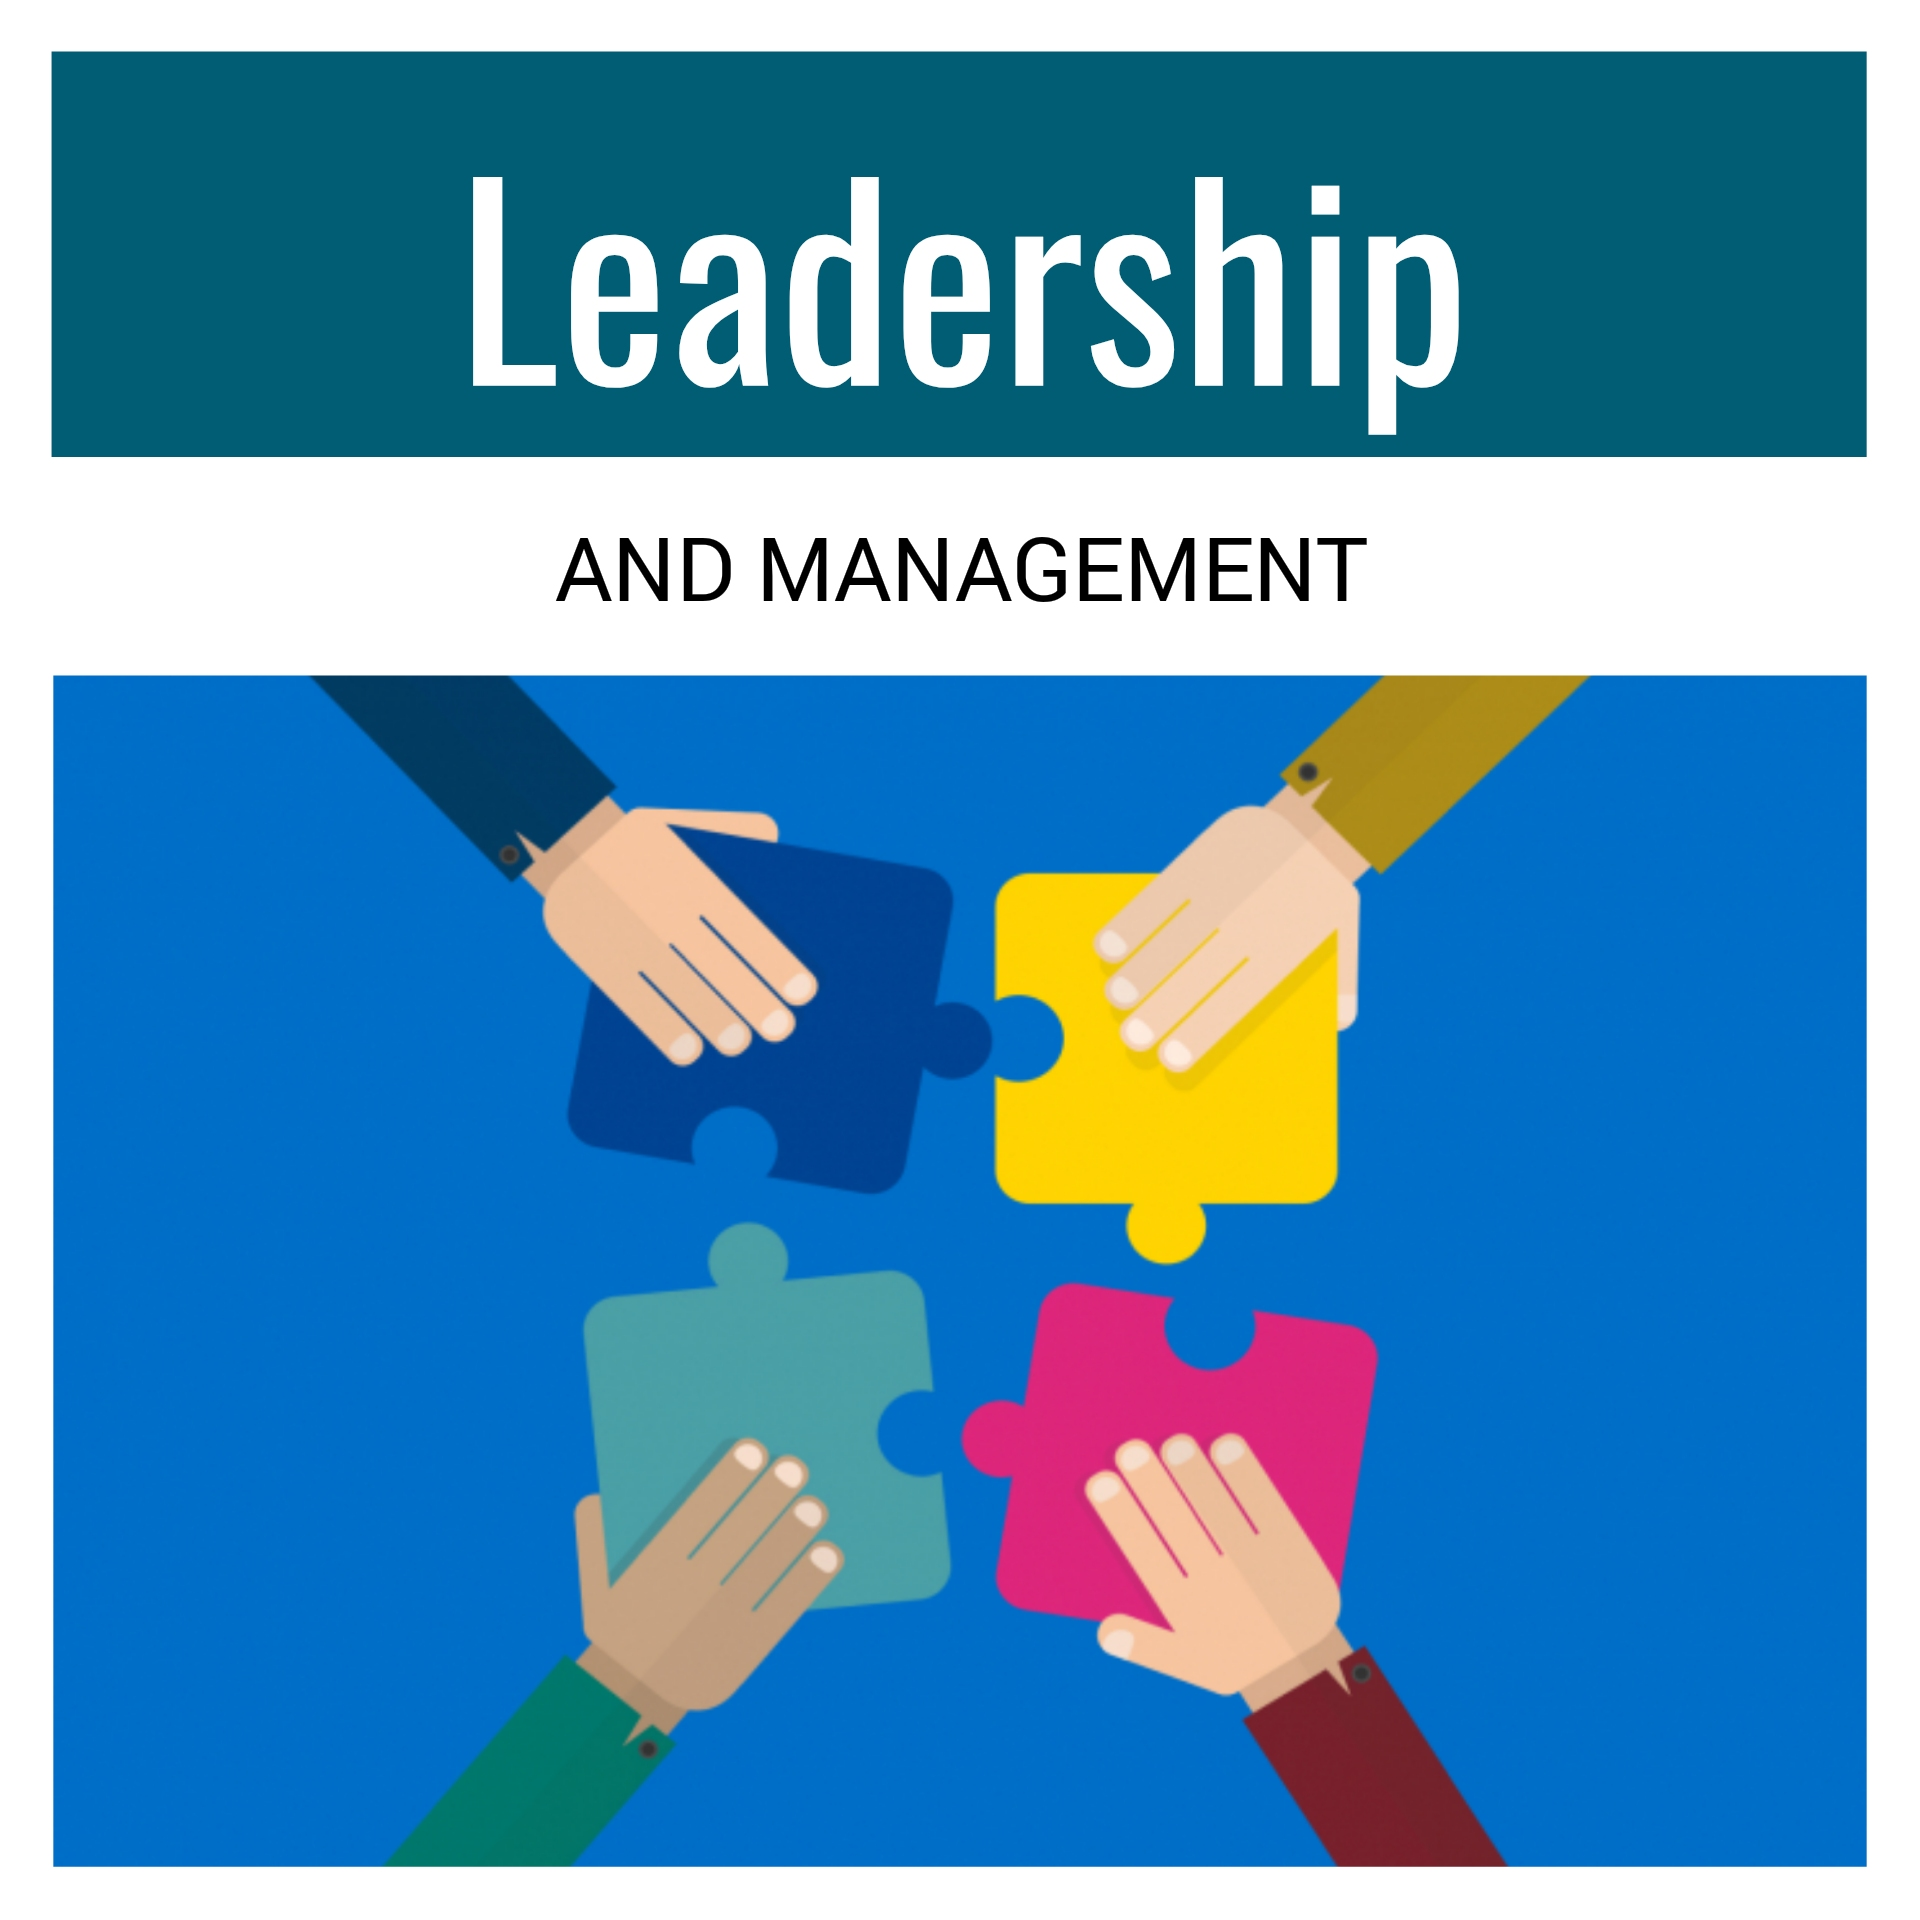 Leadership And Management 4B 2021 - 2022